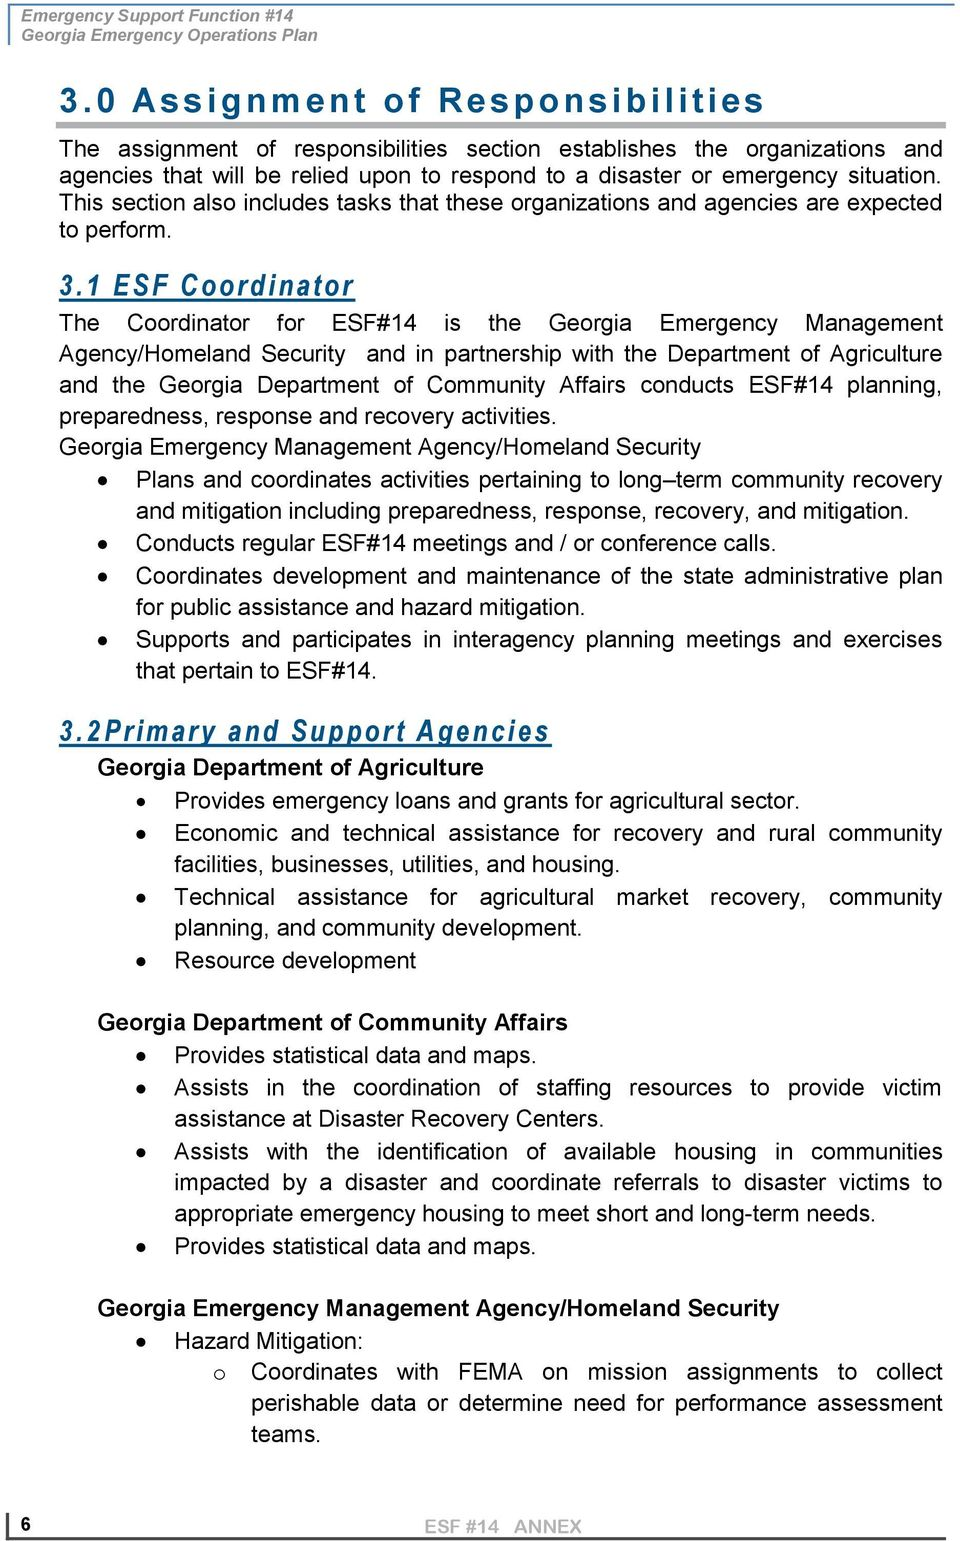 1 E S F C o o r d i n a t o r The Coordinator for ESF#14 is the Georgia Emergency Management Agency/Homeland Security and in partnership with the Department of Agriculture and the Georgia Department